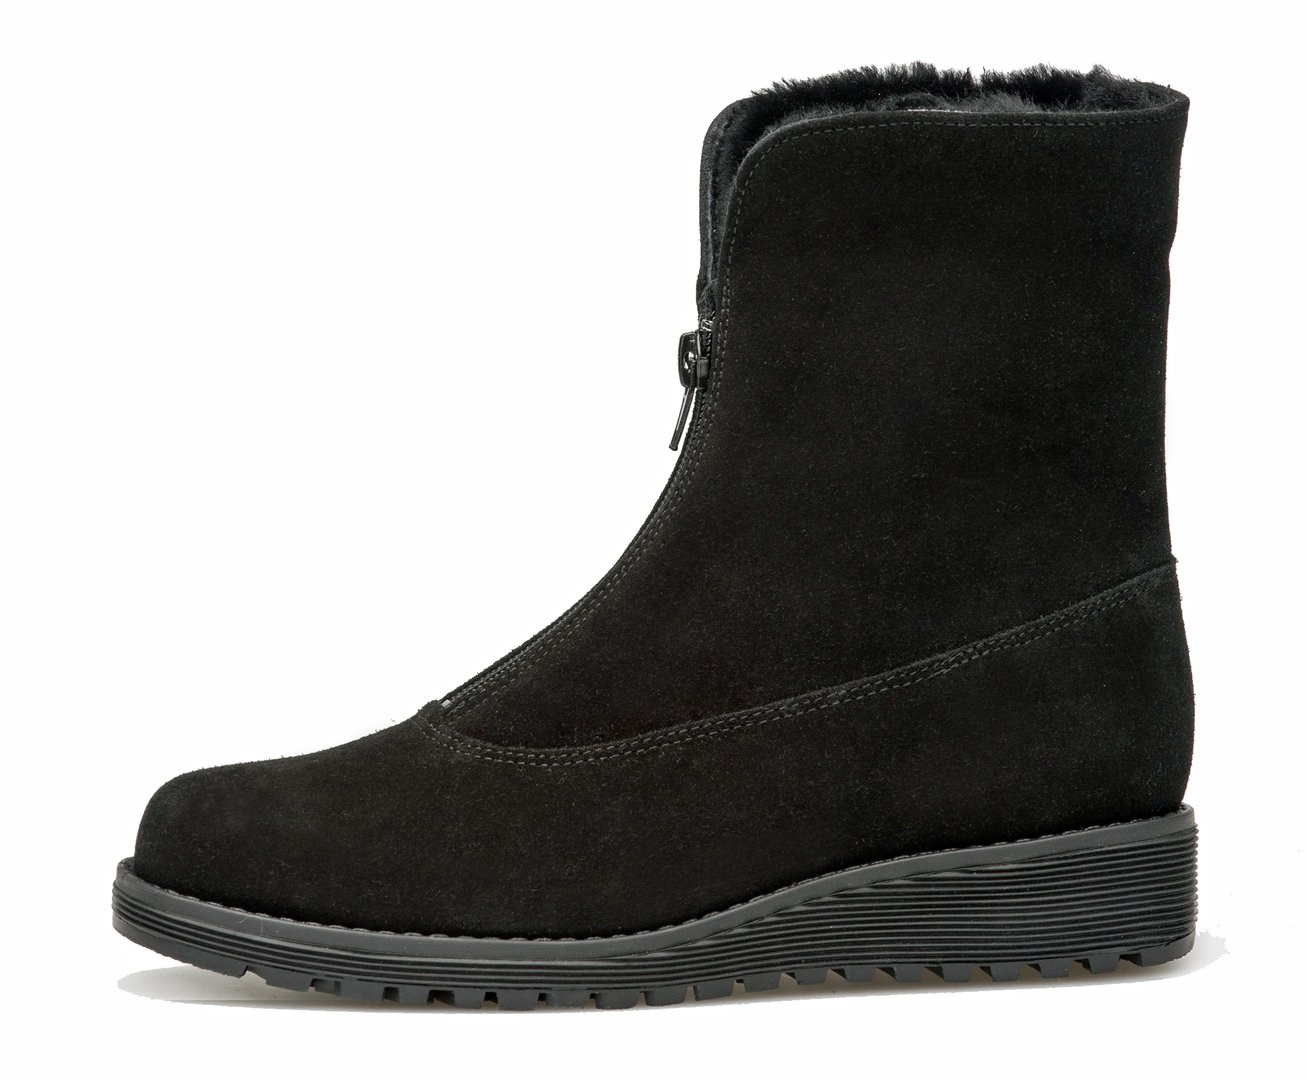 Ankle Boot With Front Zipper Black Suede High Quality